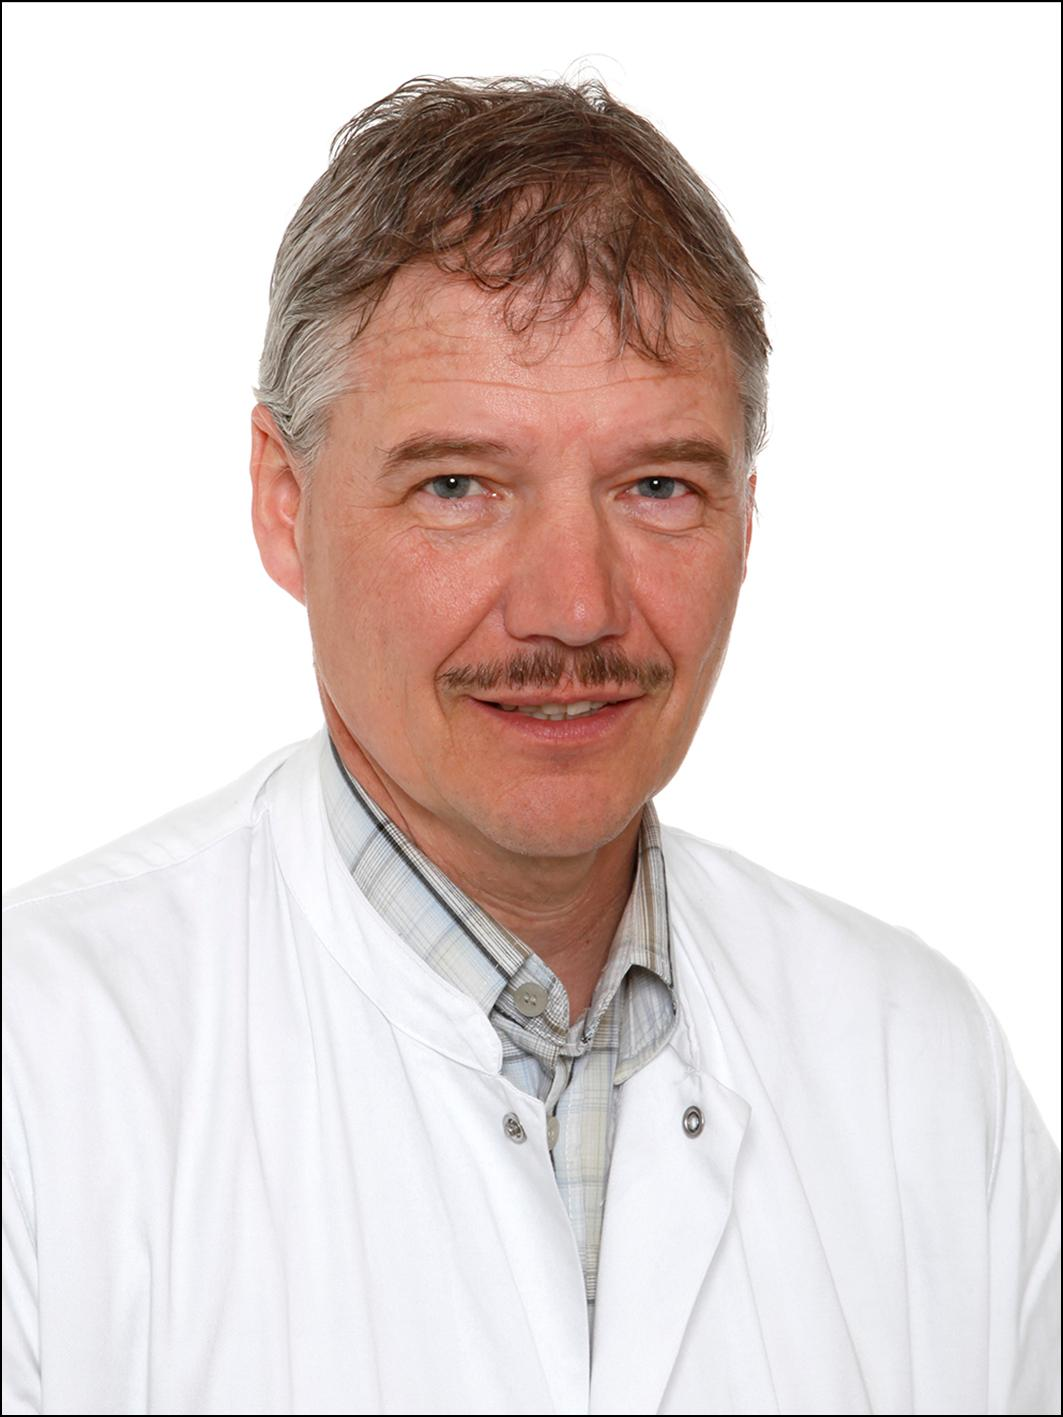 Photo of Asbjørn Mohr Drewes